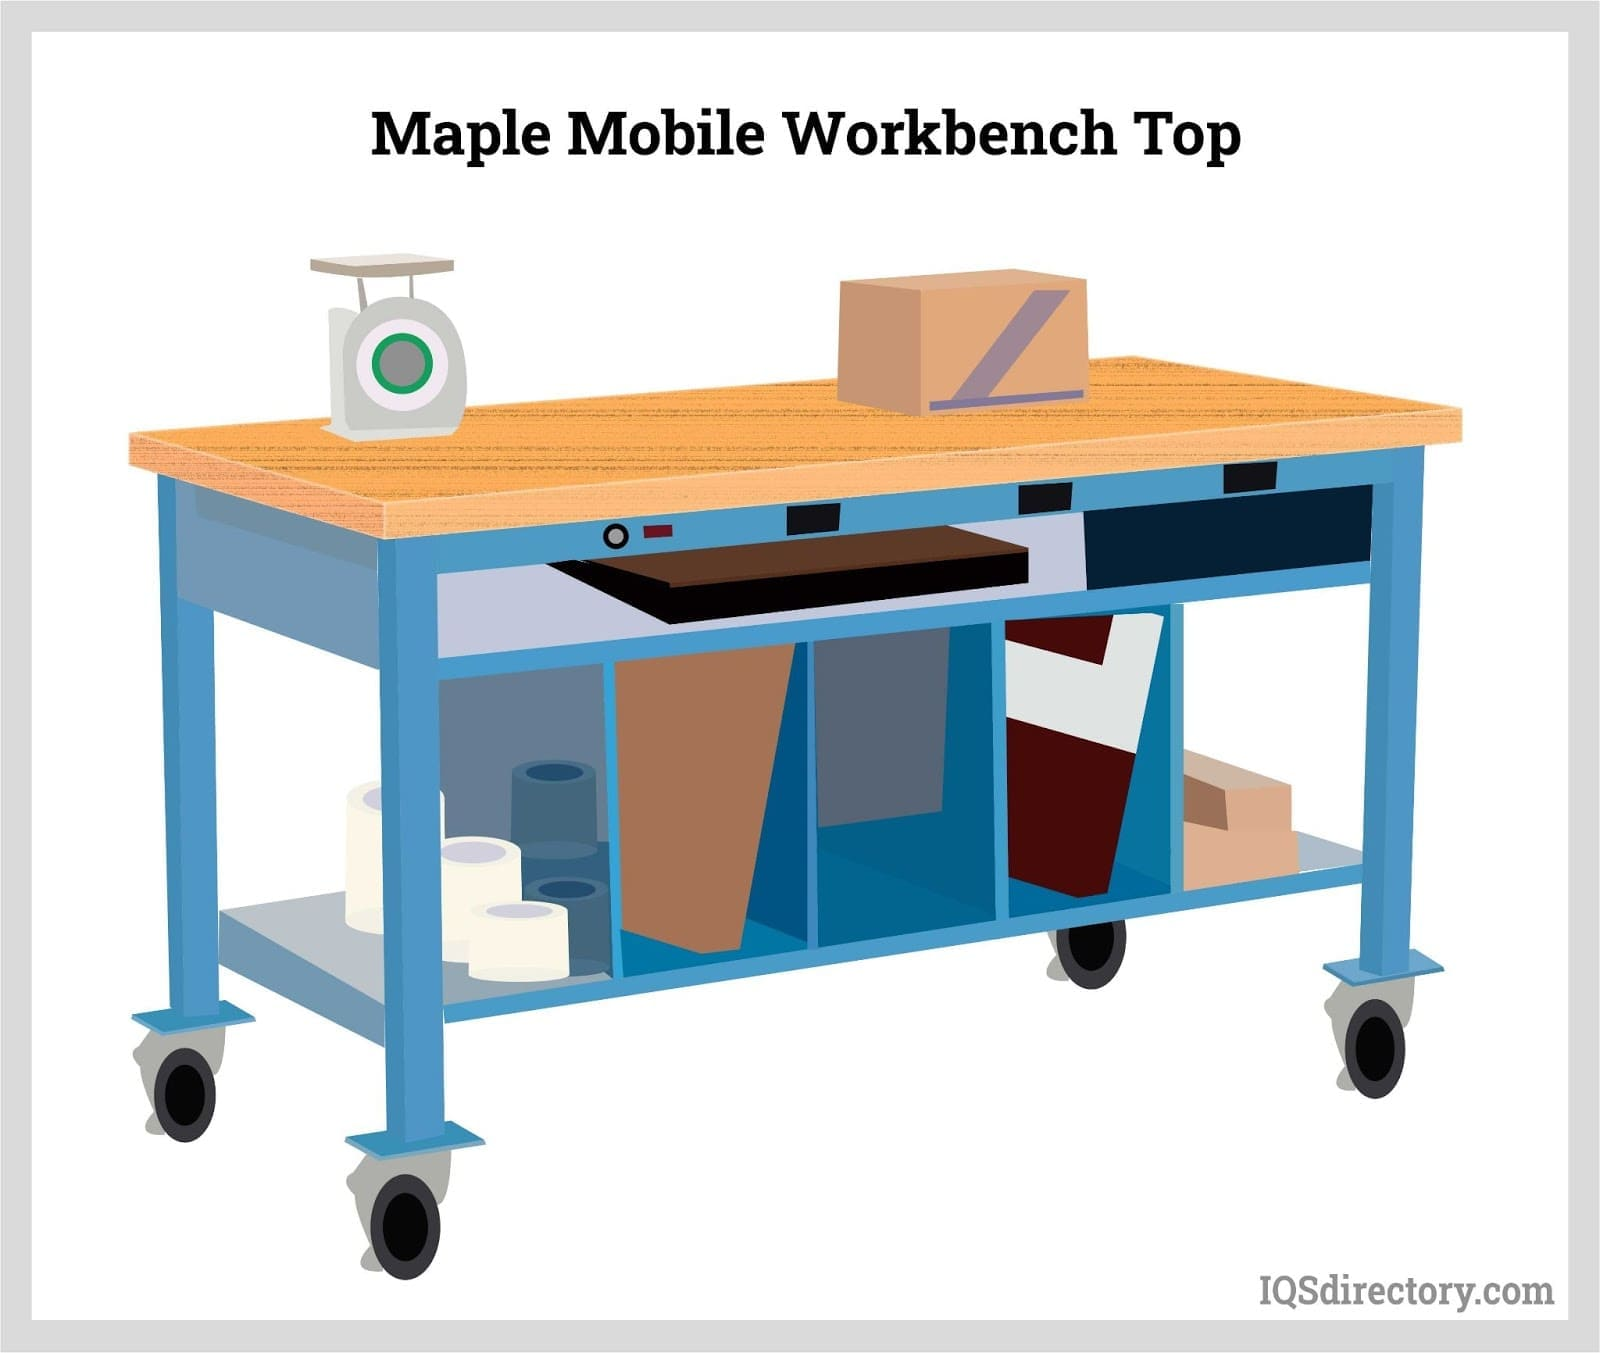 Maple Mobile Workbench Top